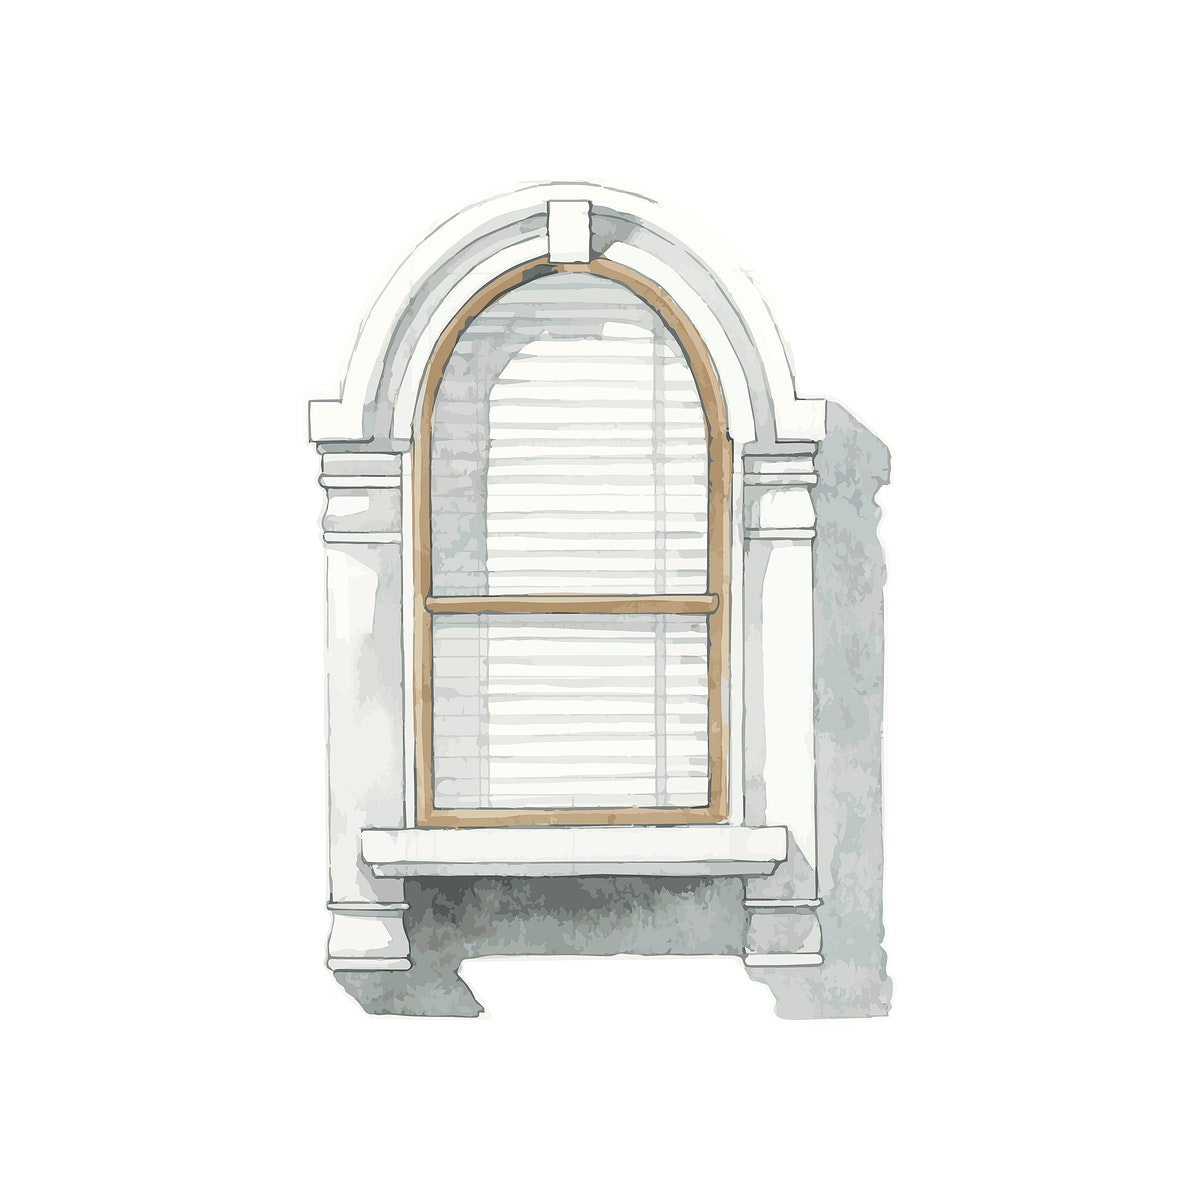 Illustration of window water color style